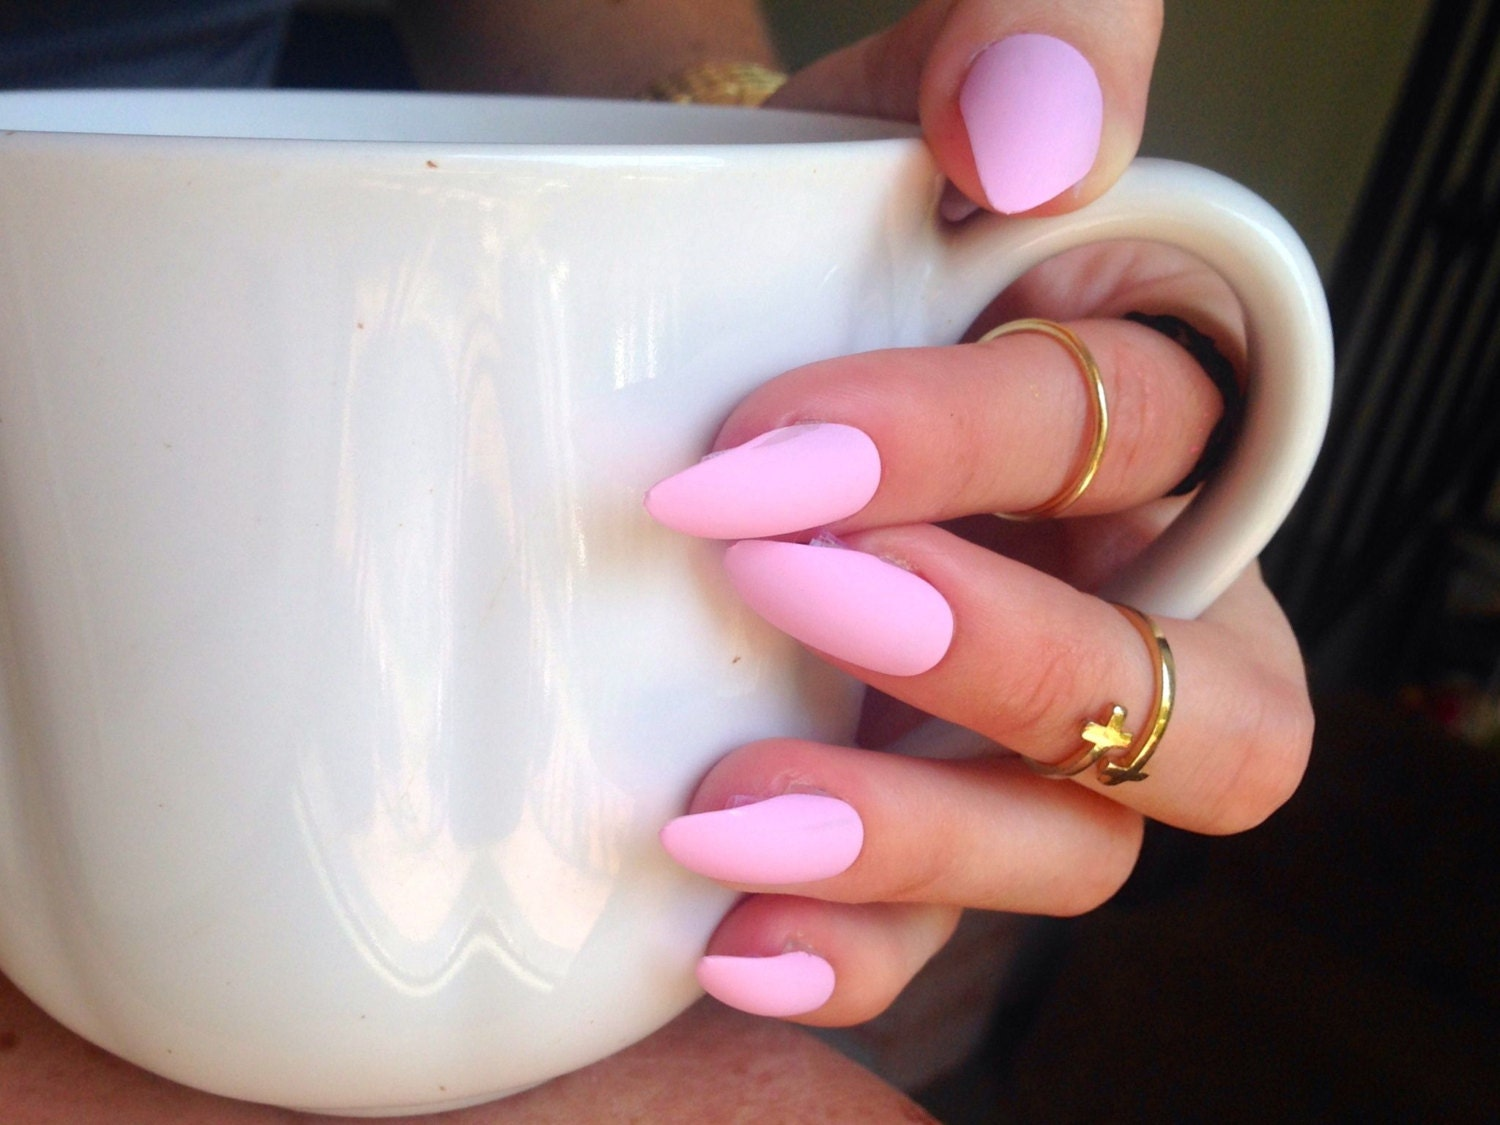 Matte Pink nails matt baby pink nails Matte press on nails